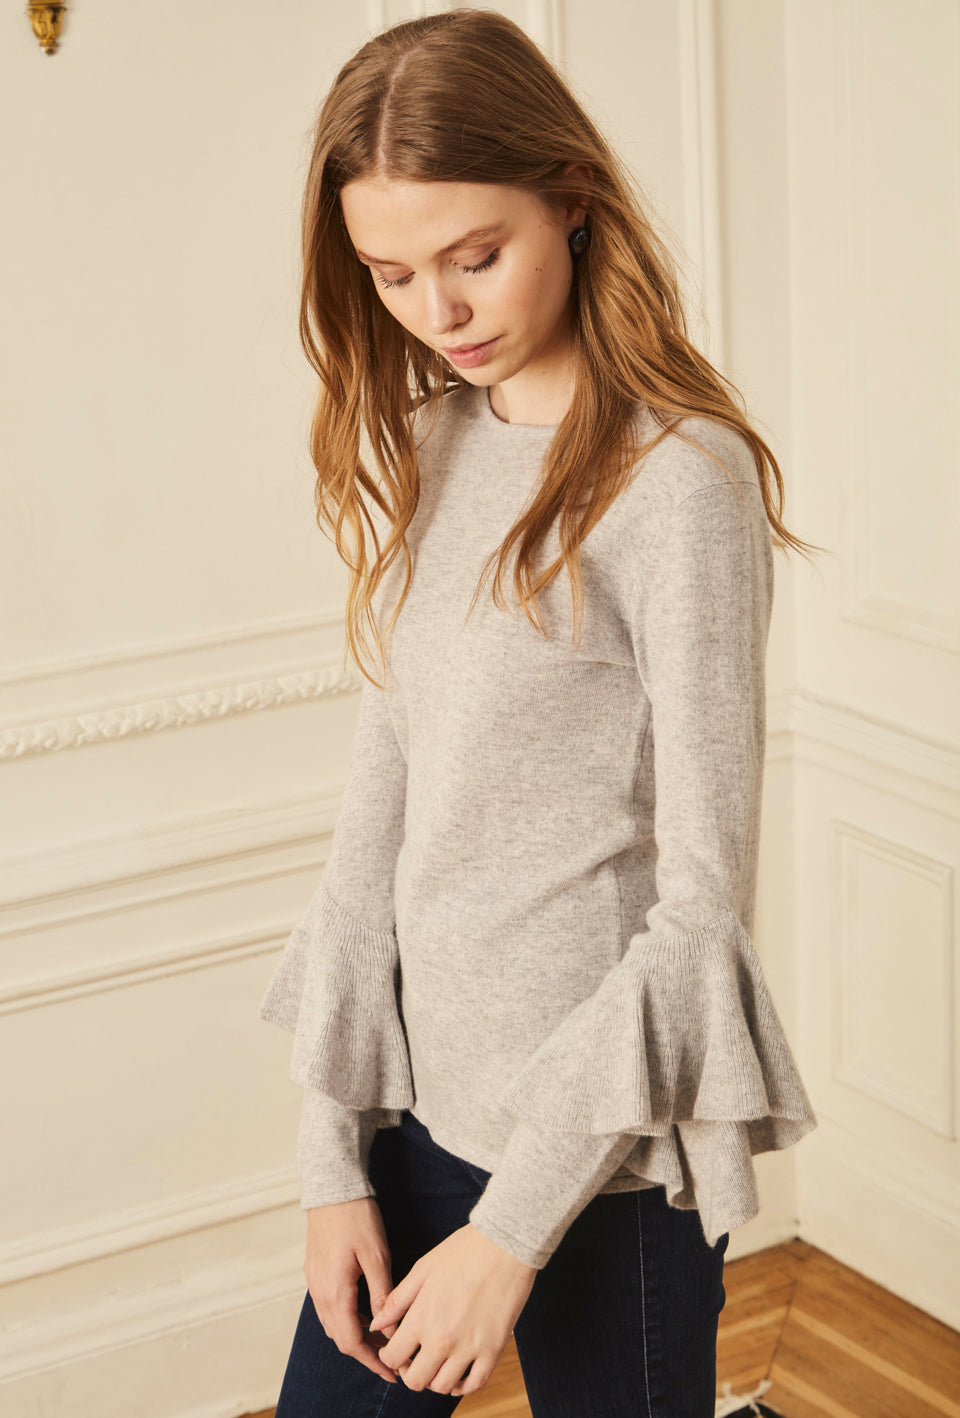 Ruffle Sleeve Sweater - Light Grey